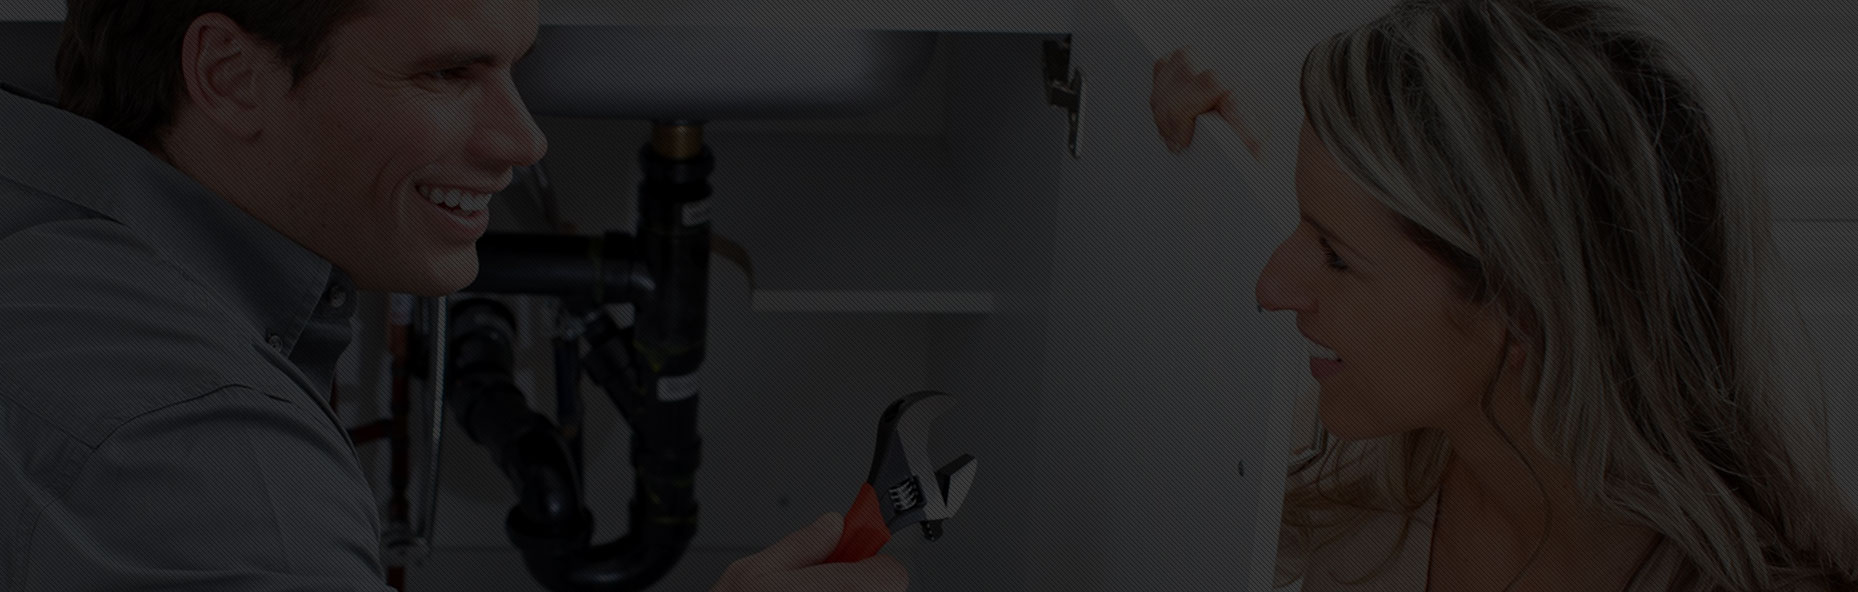 Leak Detection Services in Sunnymead, CA